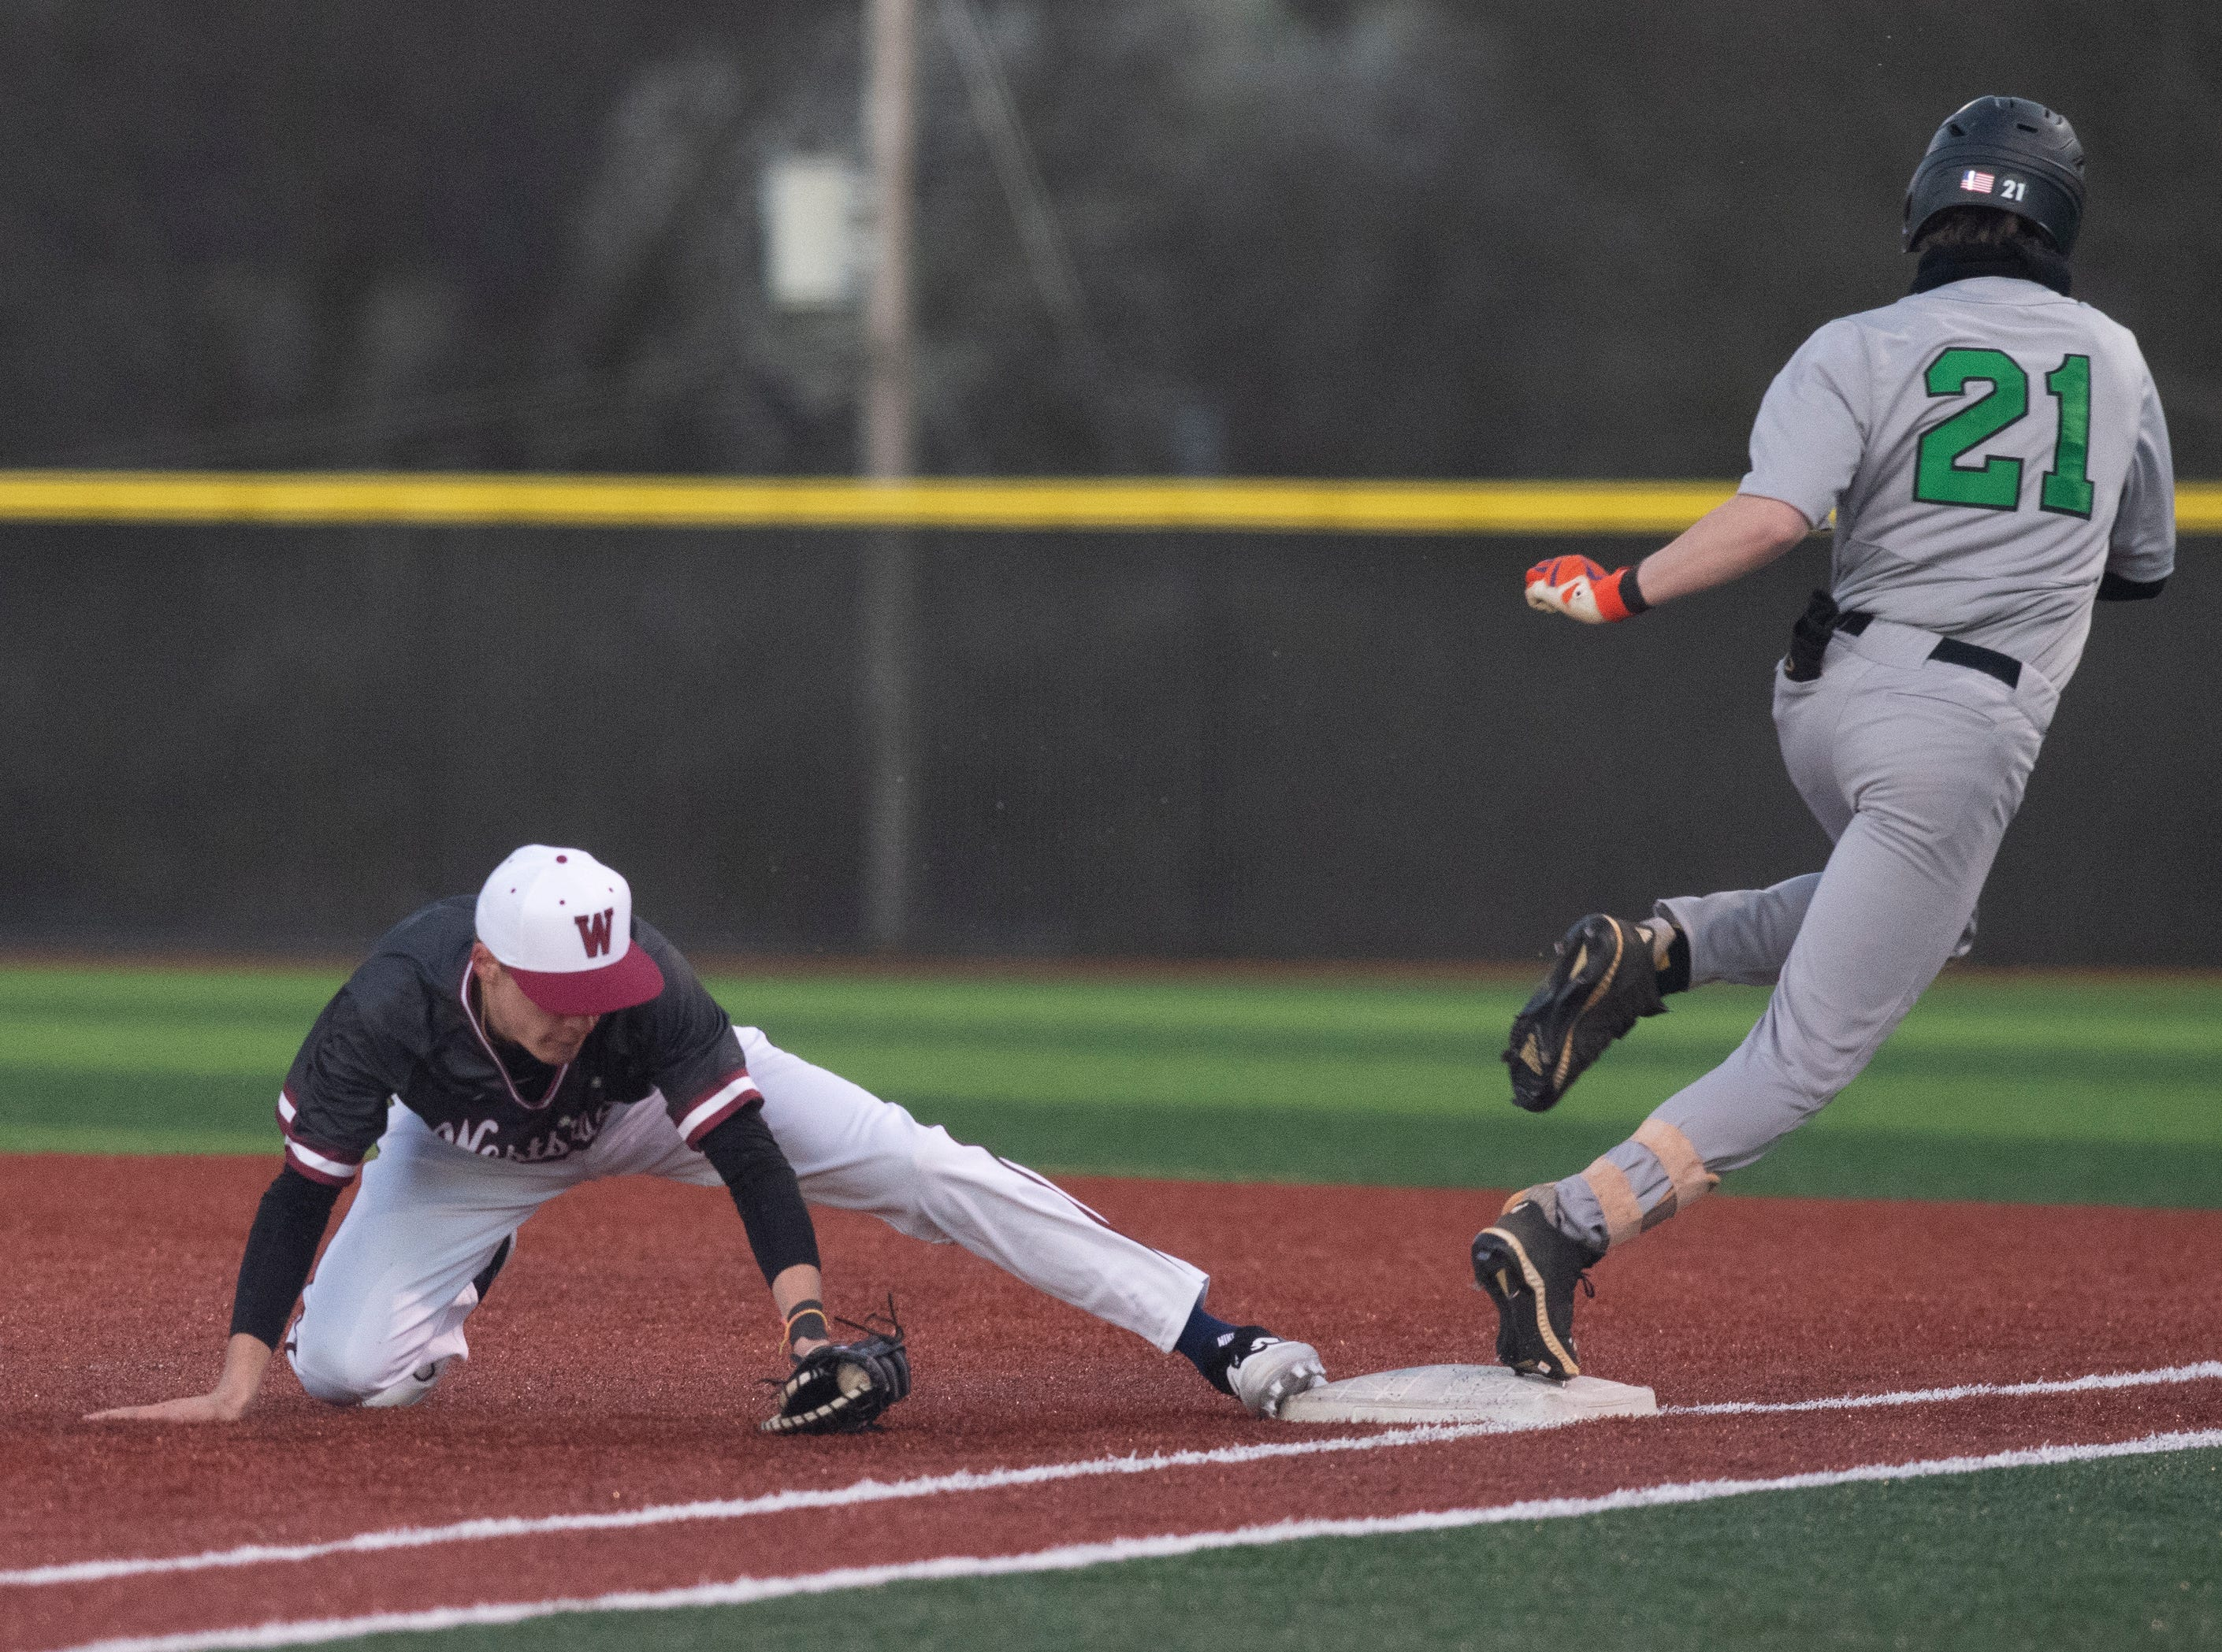 Westside High School's Nate Bailey (10) has the ball at first base forcing Easley High School's Banks Starbuck (21) out at Westside High School Tuesday, Mar. 5, 2019.